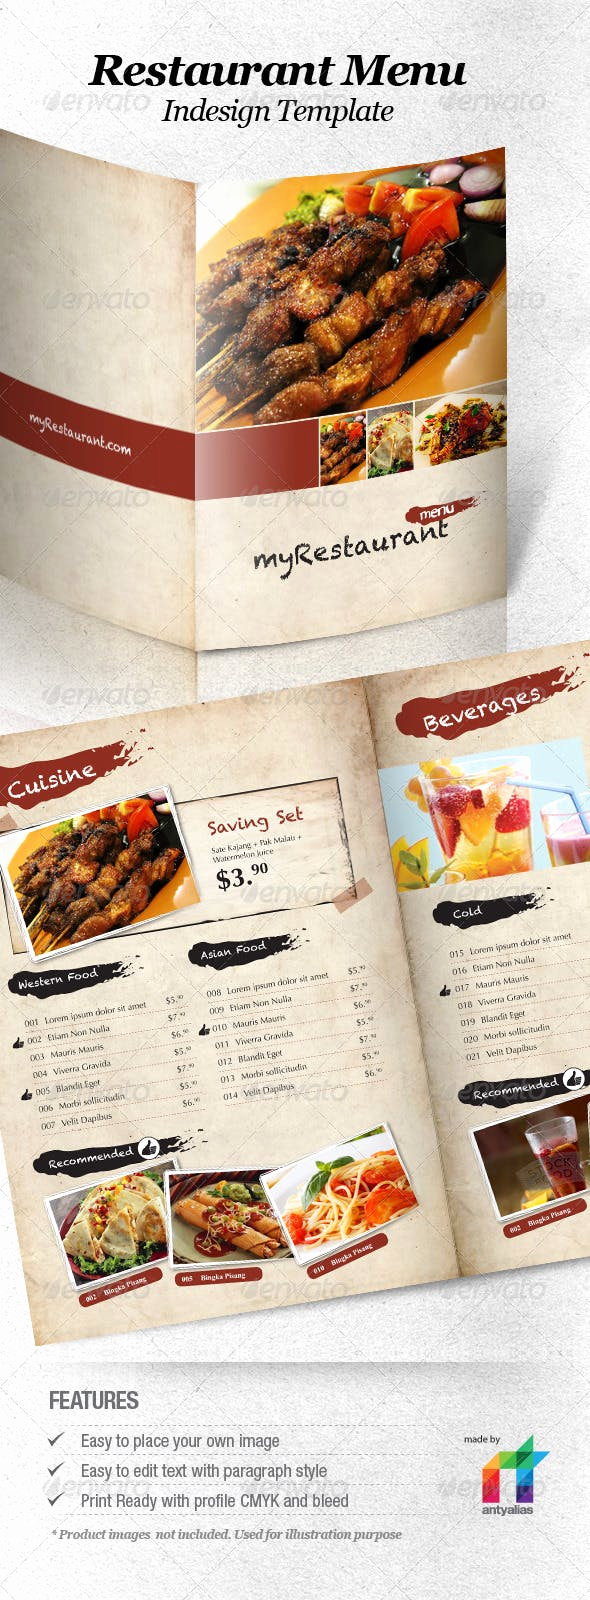 Indesign Menu Template Free Awesome Restaurant Menu Indesign Template by Antyalias